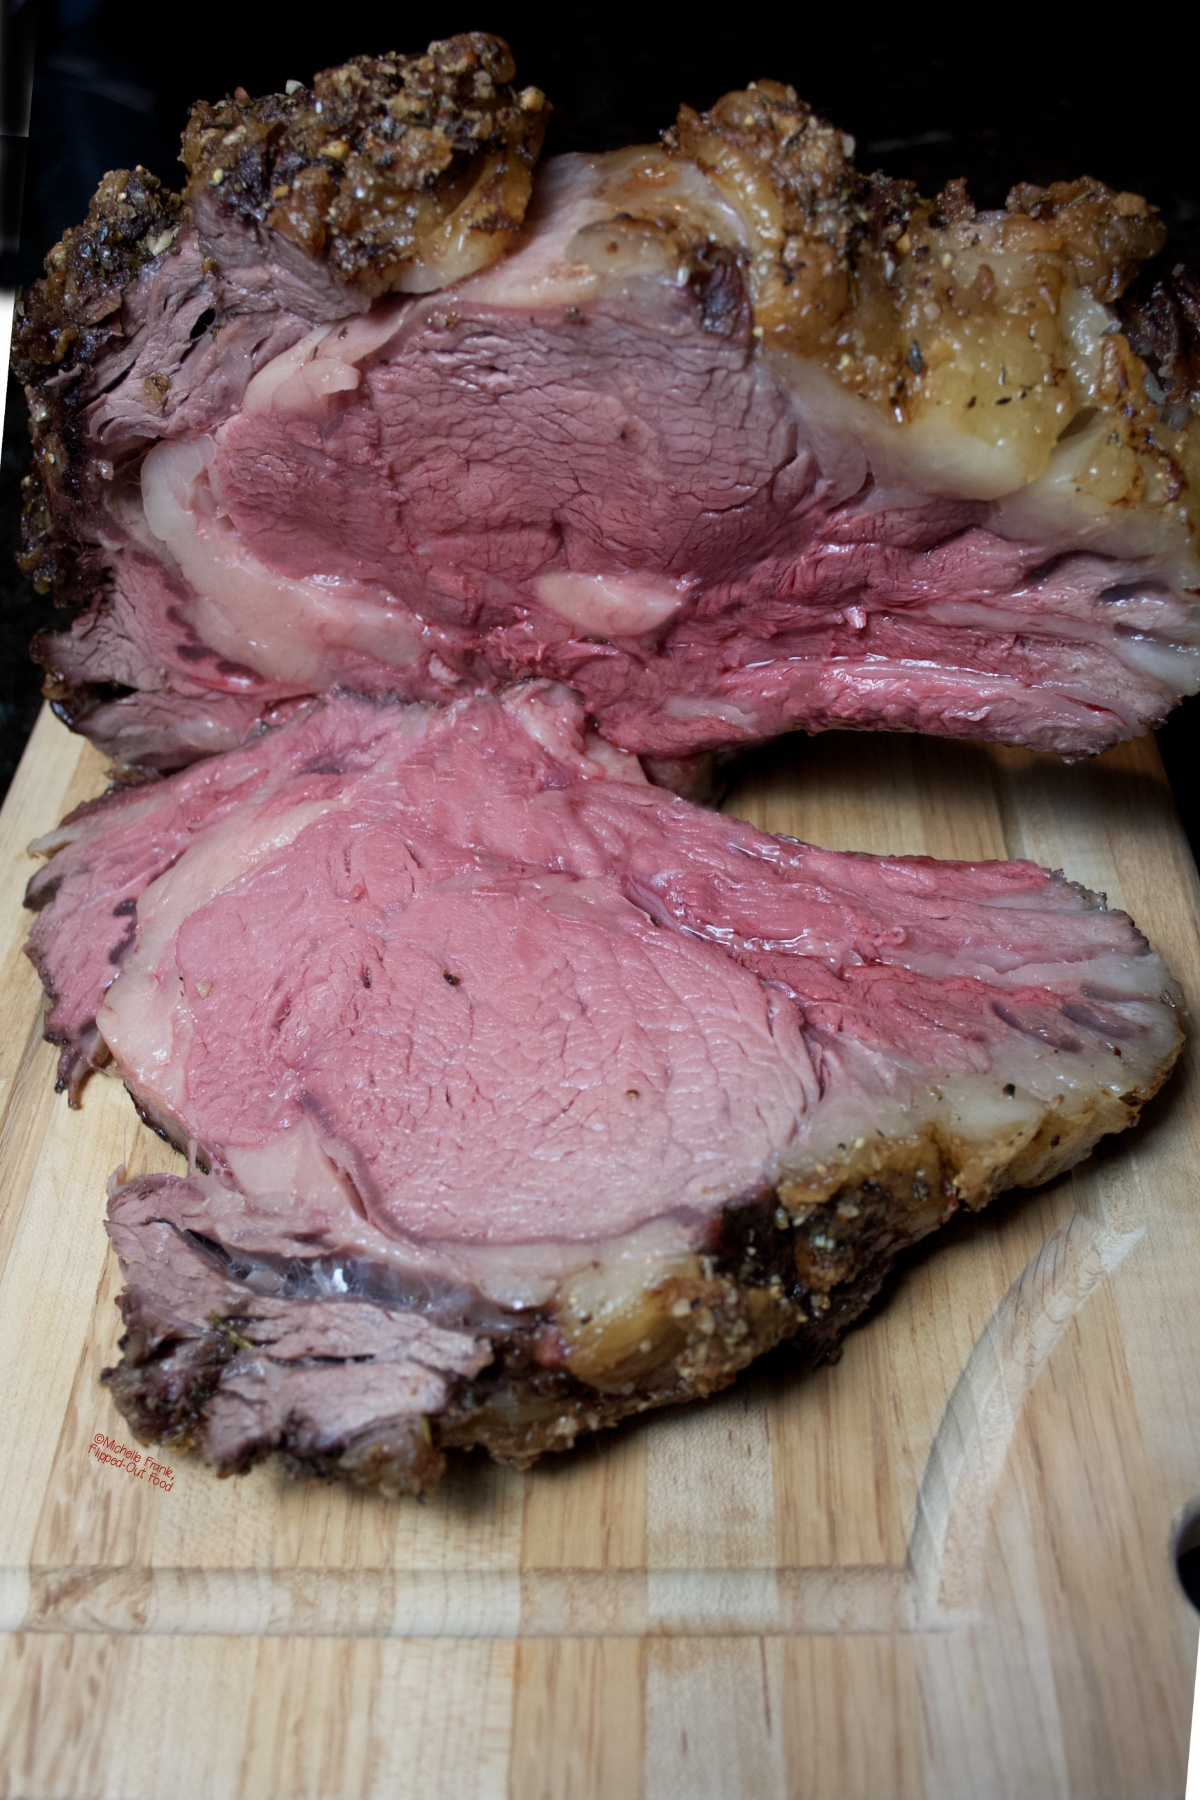 Date Night Prime Rib Roast on a wooden cutting board, with a single slab sliced off and laying on the board.